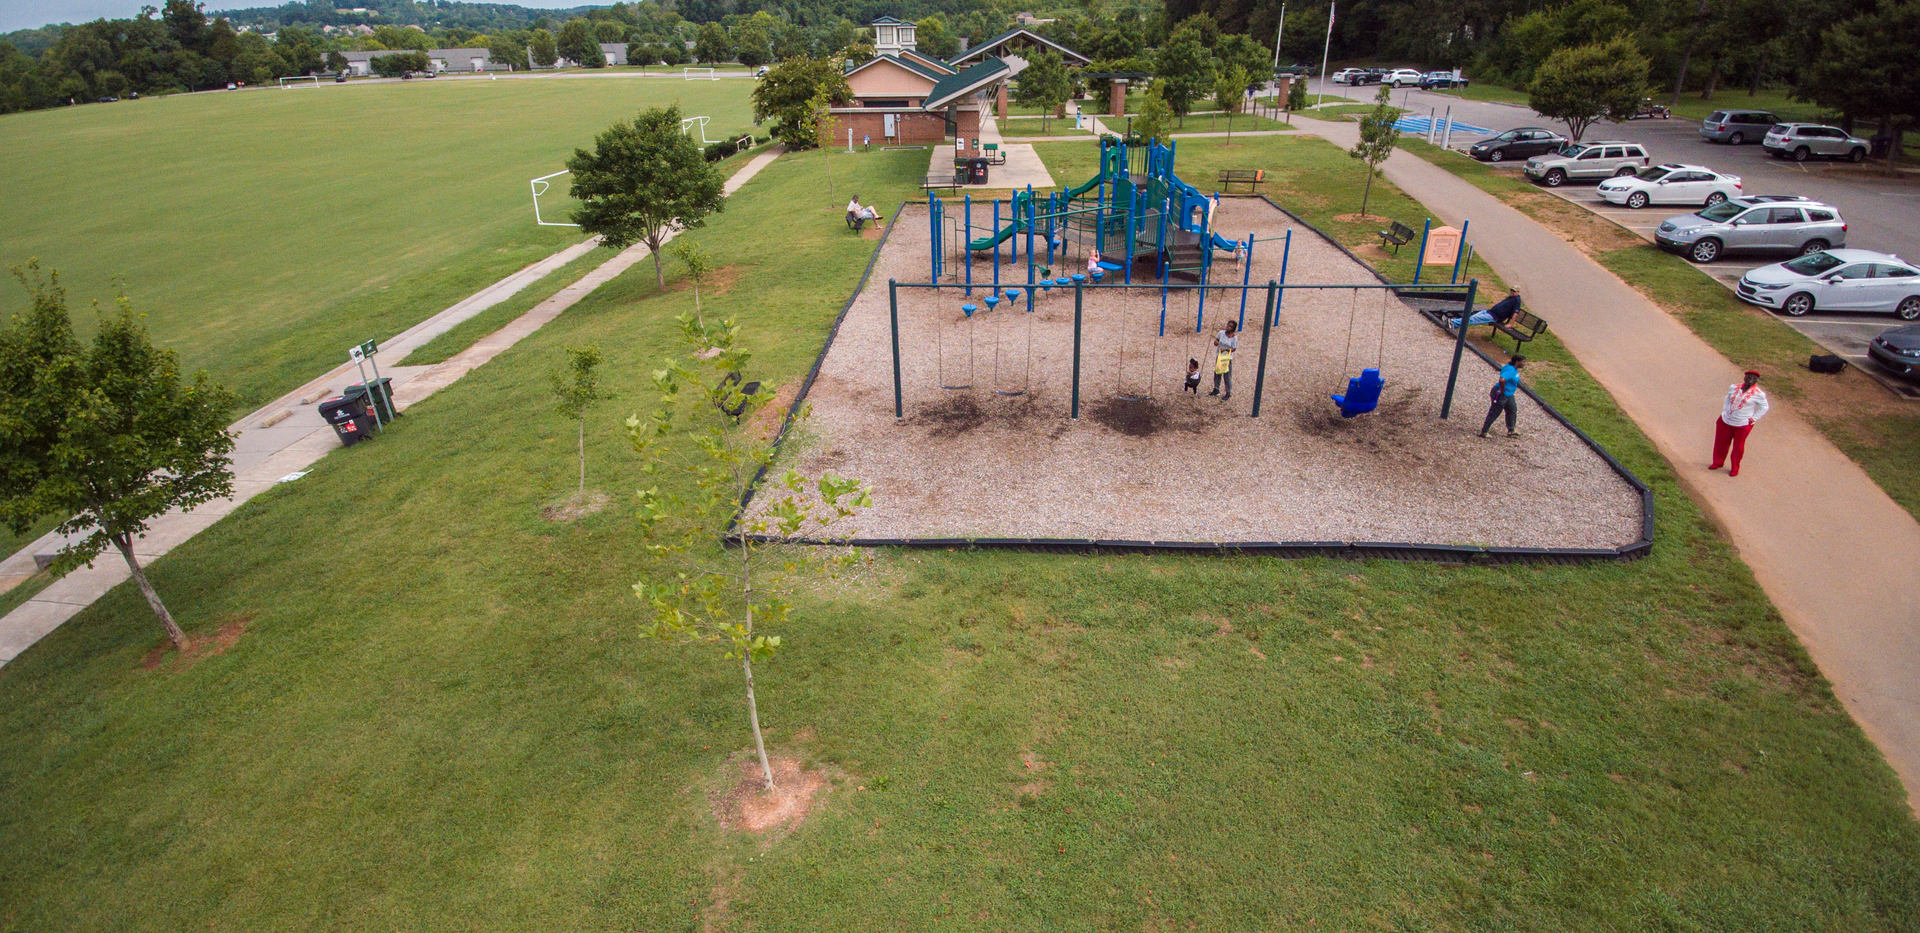 Victor Ashe Park playground